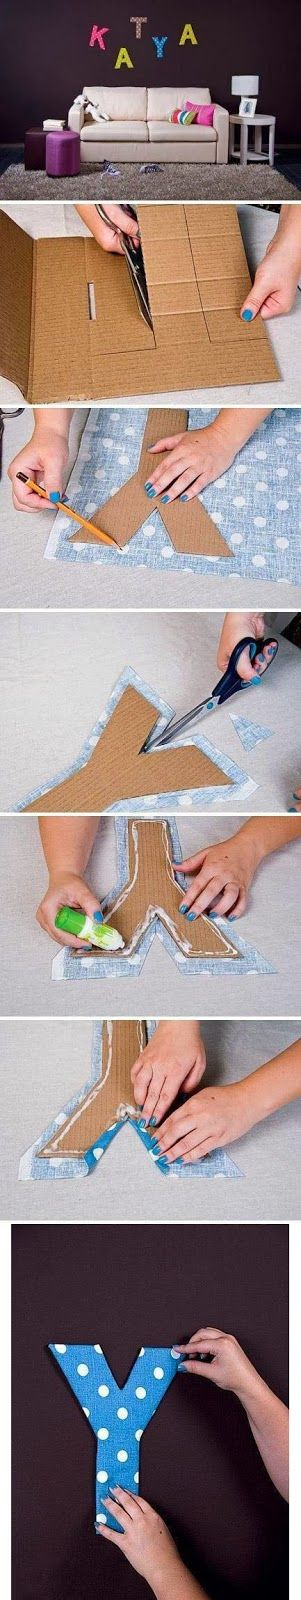 Fabric and Cardboard Wall Letters | http://pinterest-hot-pins.blogspot.com/